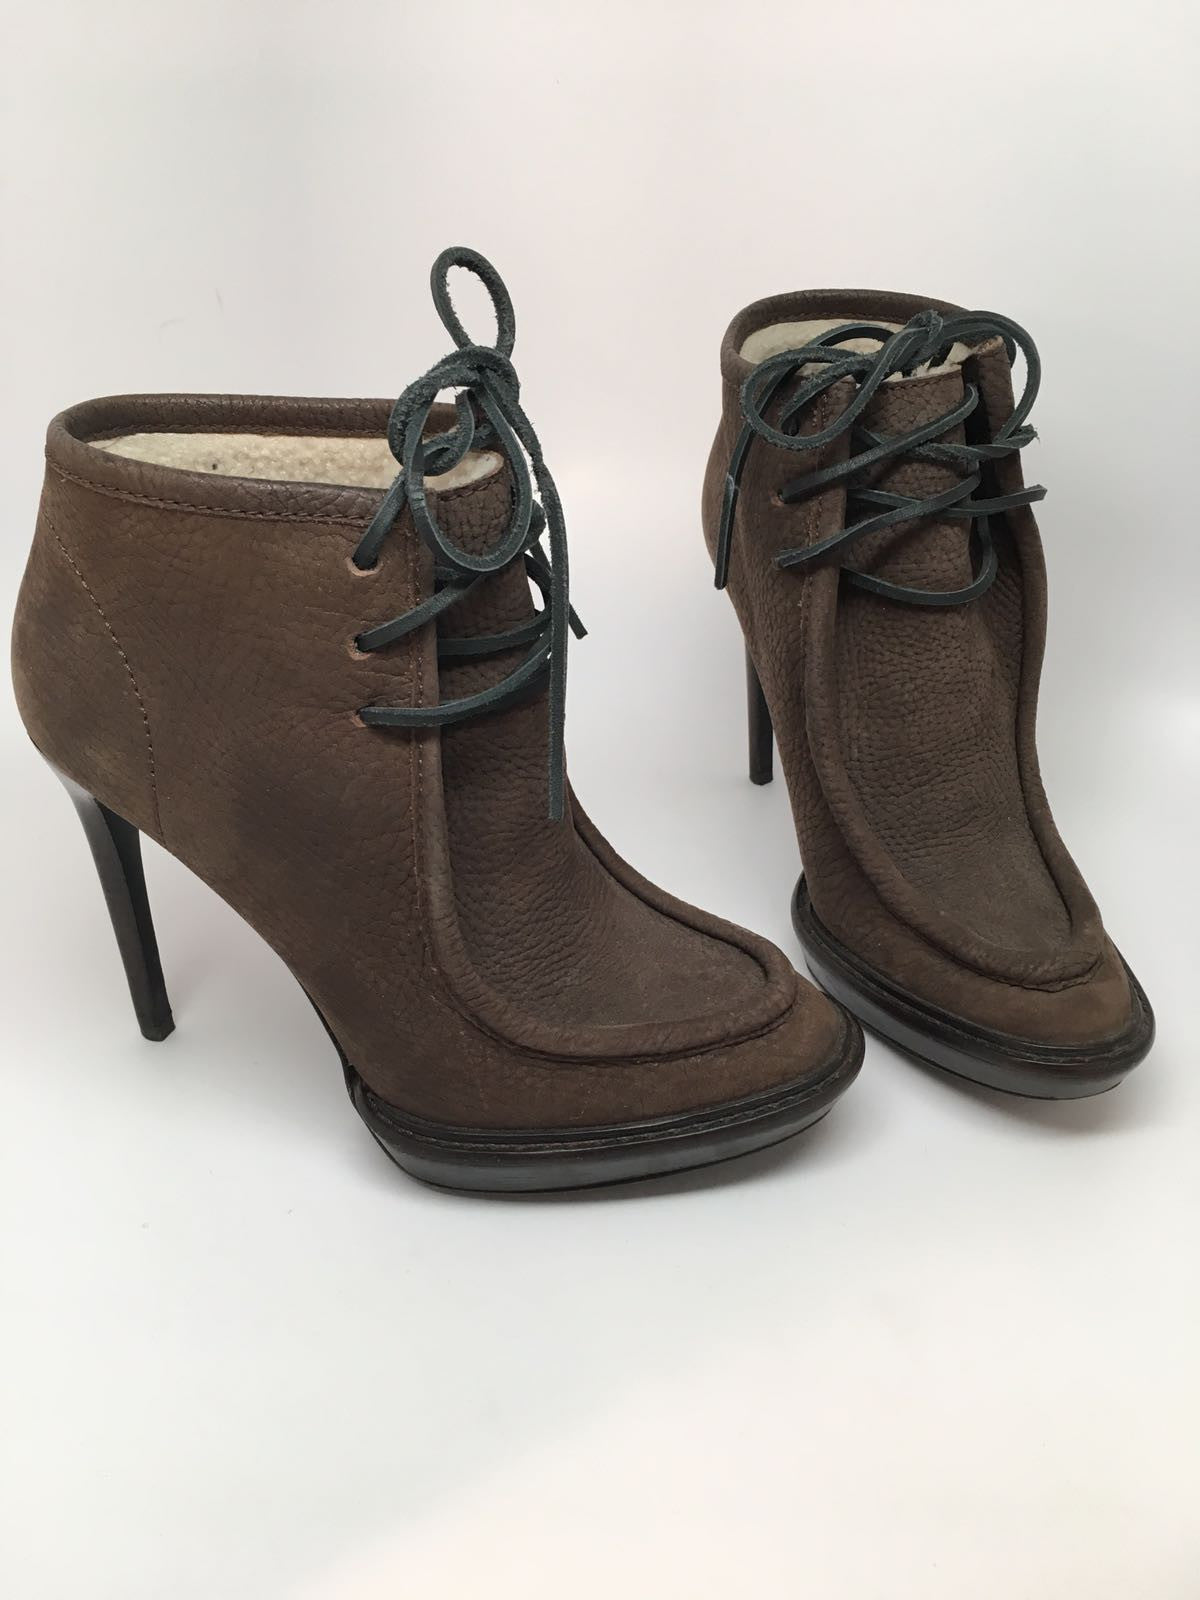 BURBERRY PRORSUM 'THE FIELD' SUEDE ANKLE BOOTS - SIZE 36.5